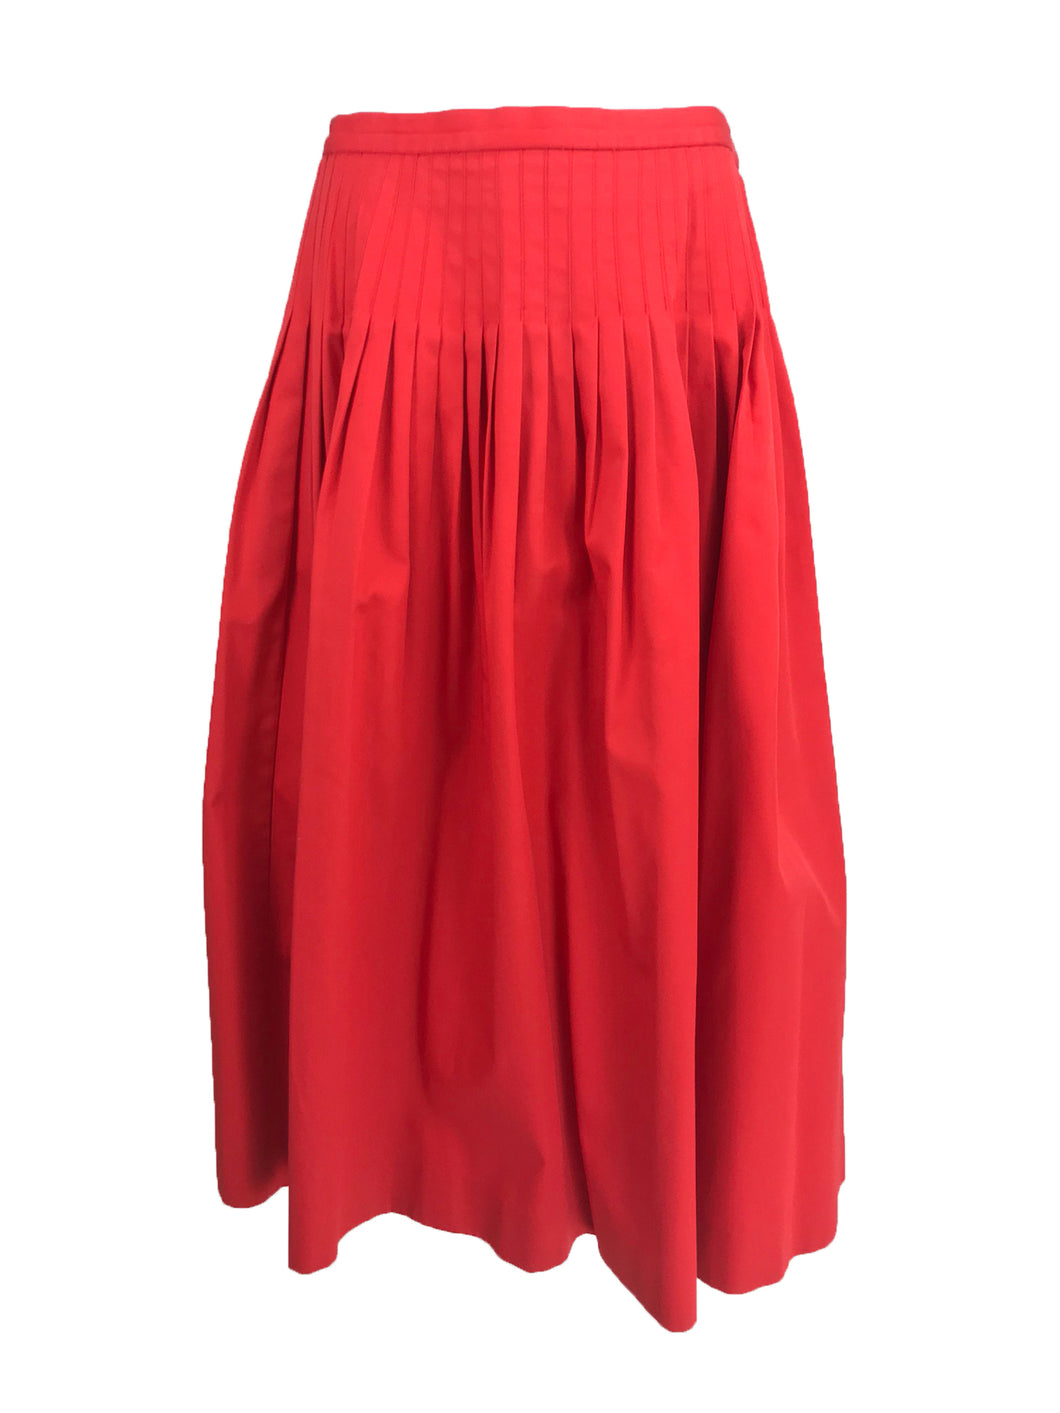 Vintage Yves Saint Laurent Tomato Red Cotton Full Pleated Skirt 1970s